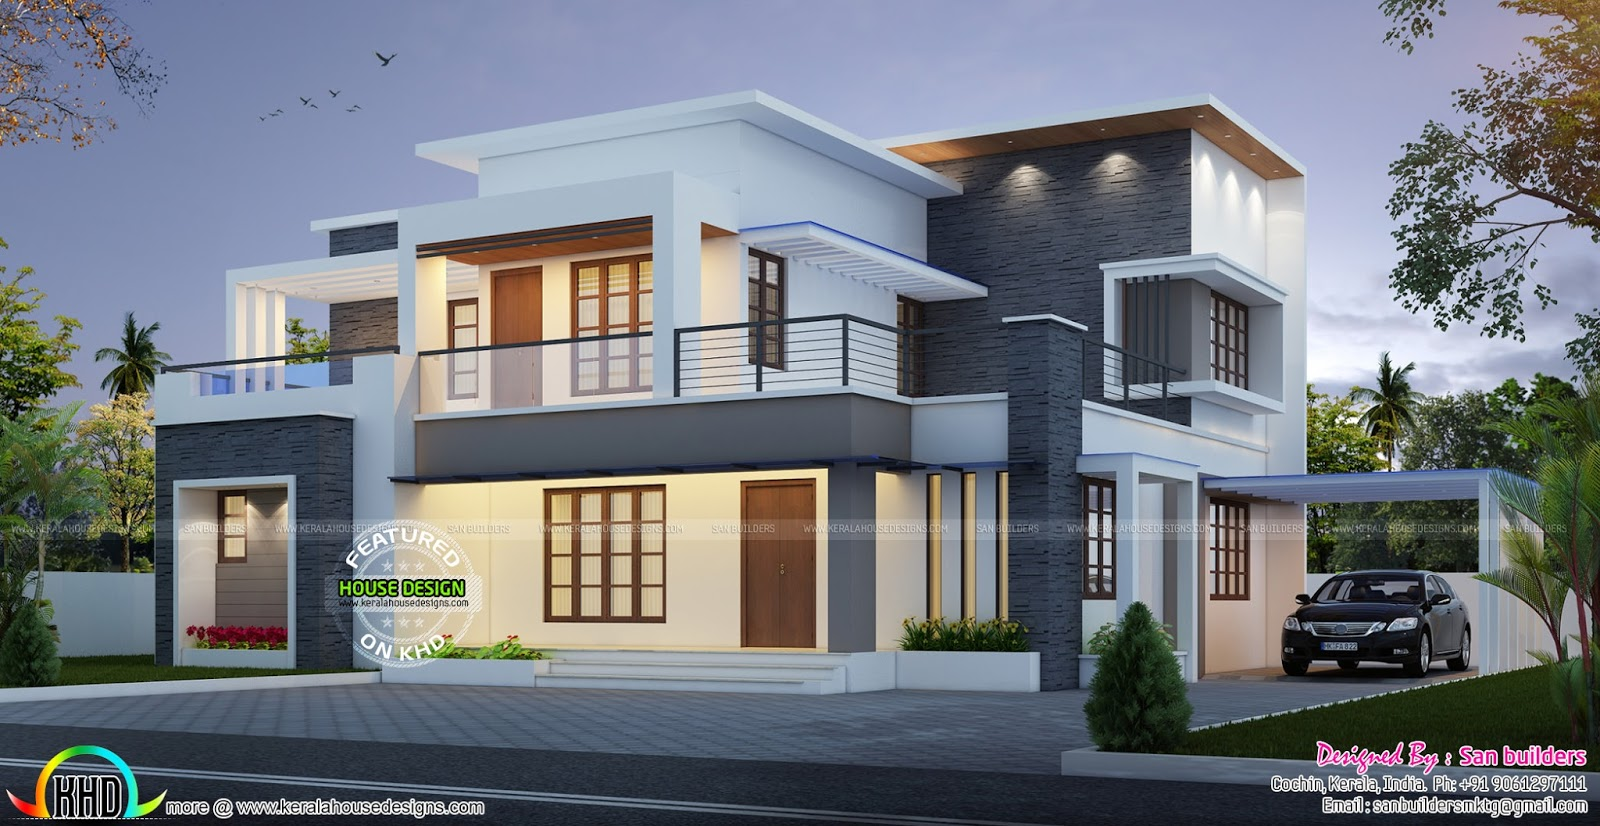 House plans ghana holla bedroom plan elevation with free for Kerala style home designs and elevations